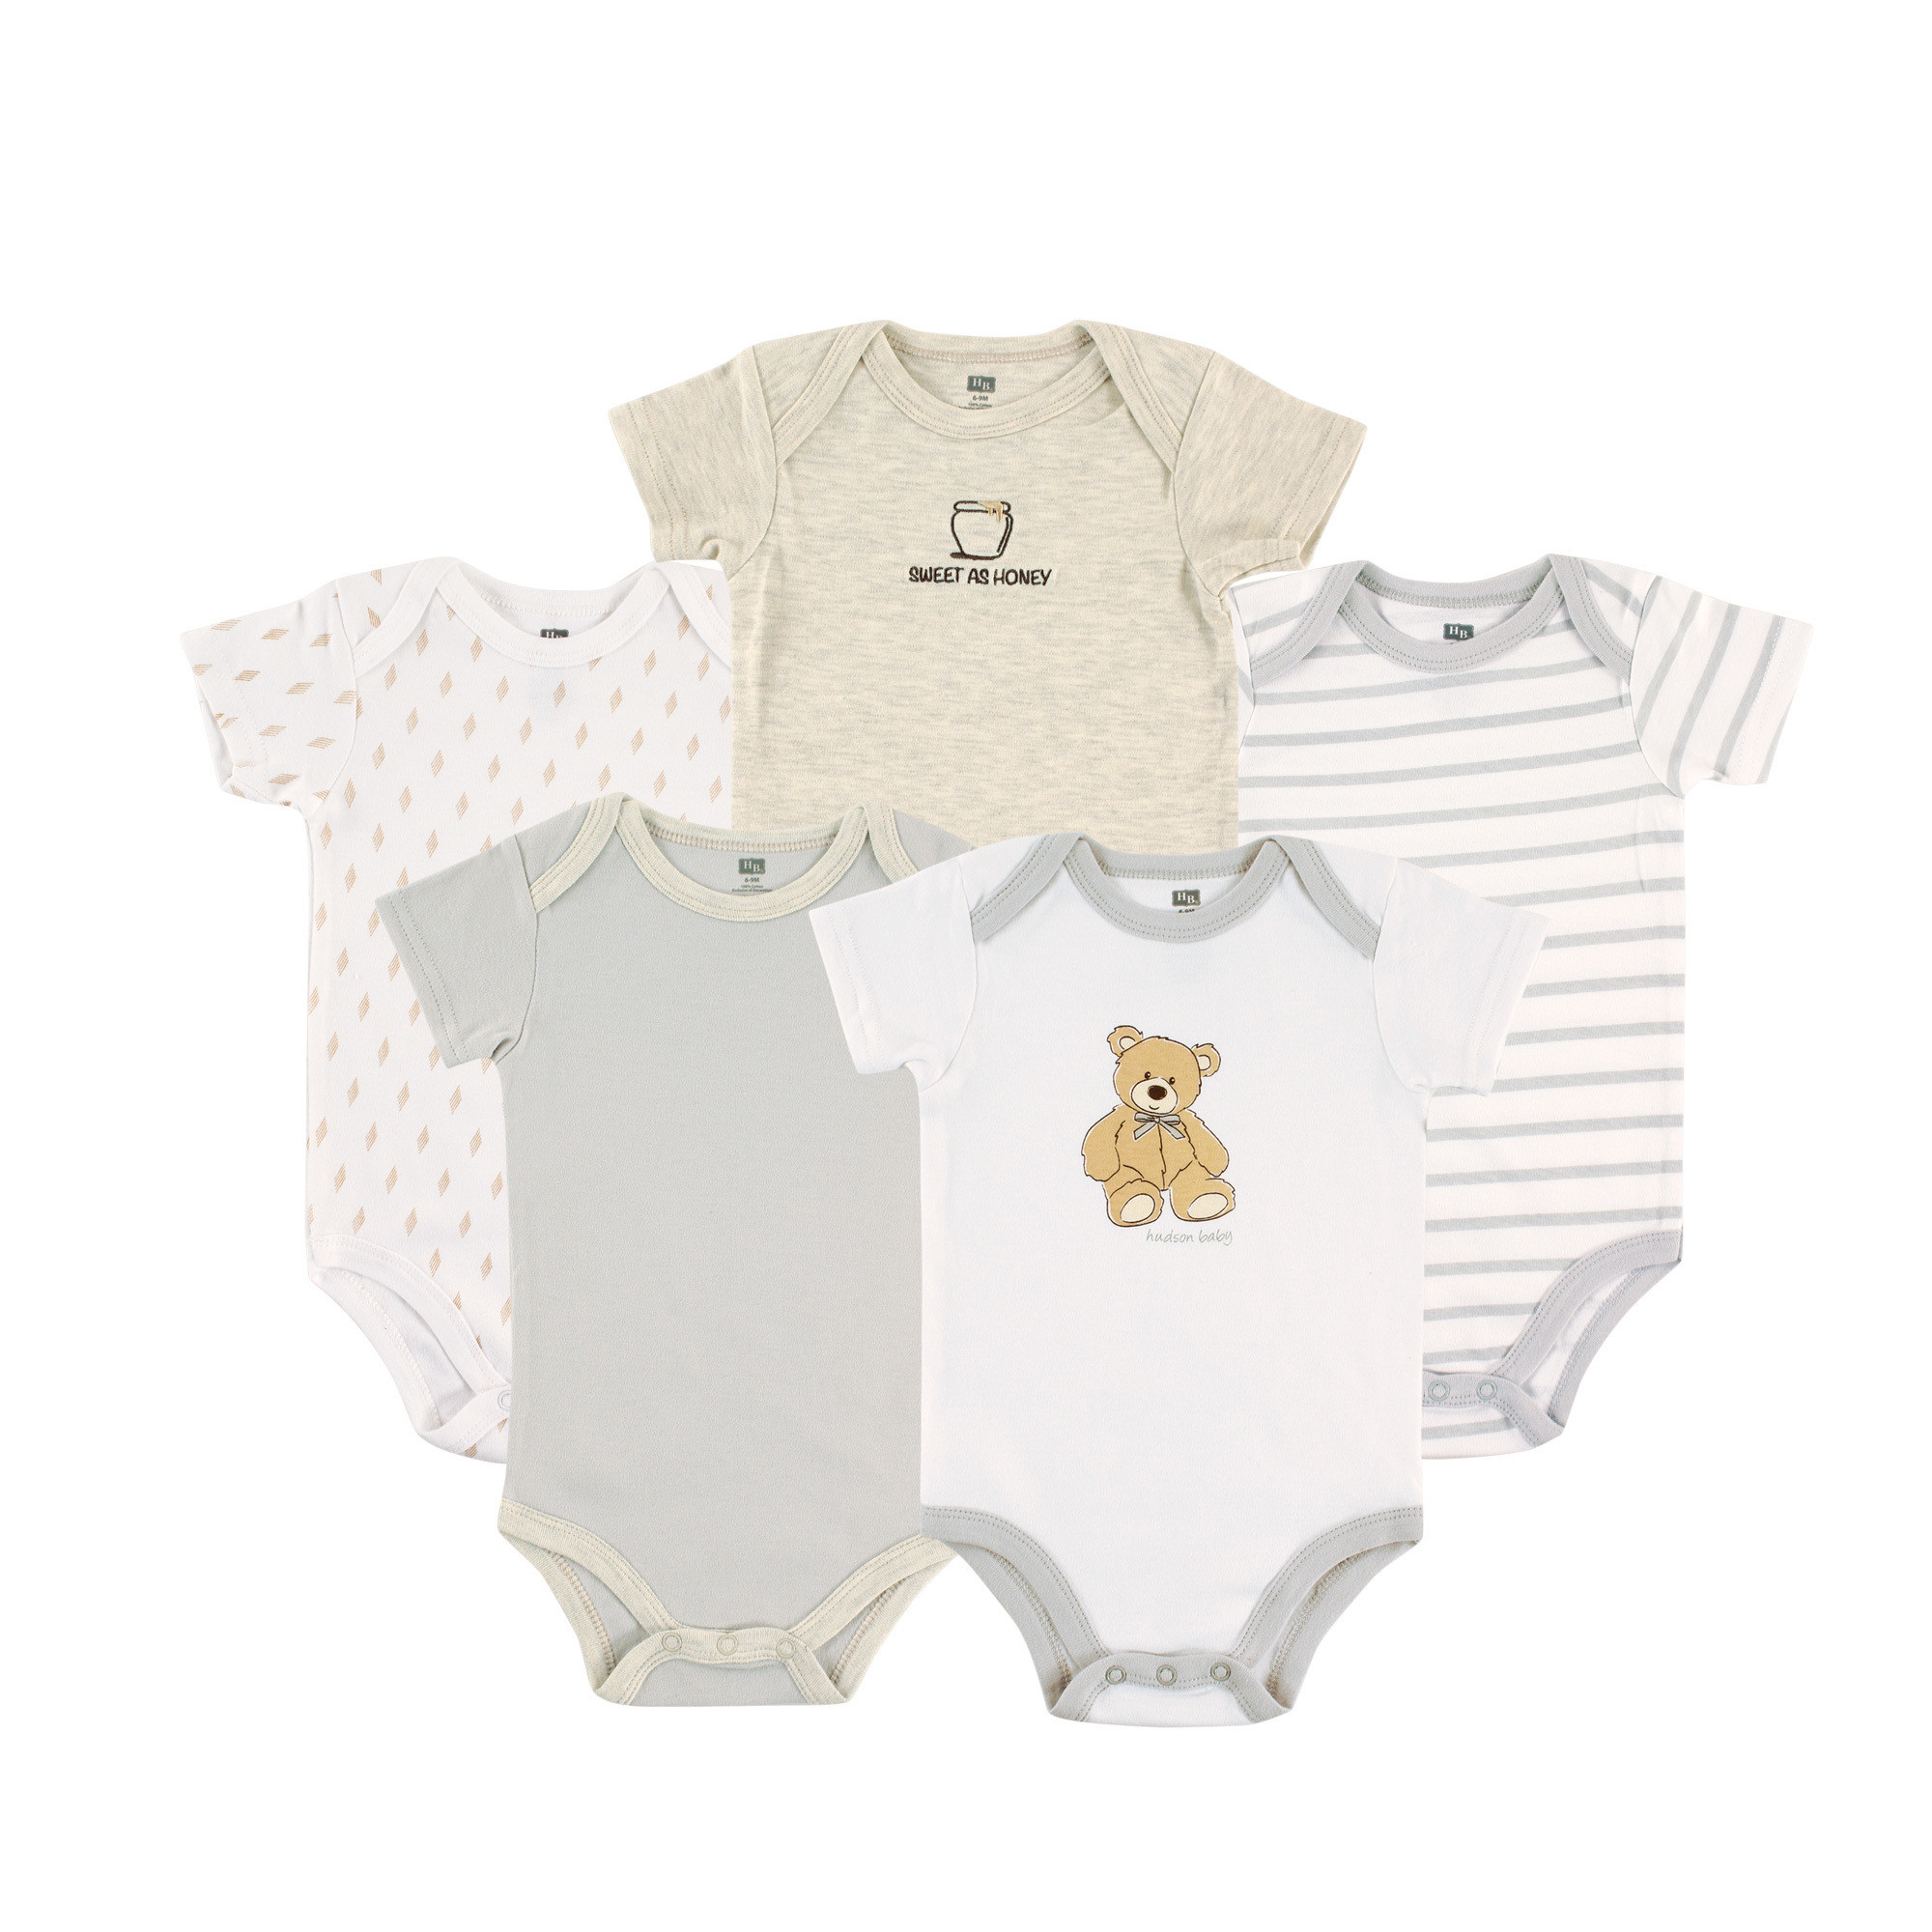 be6e52359303 Hudson Baby Cotton Bodysuits